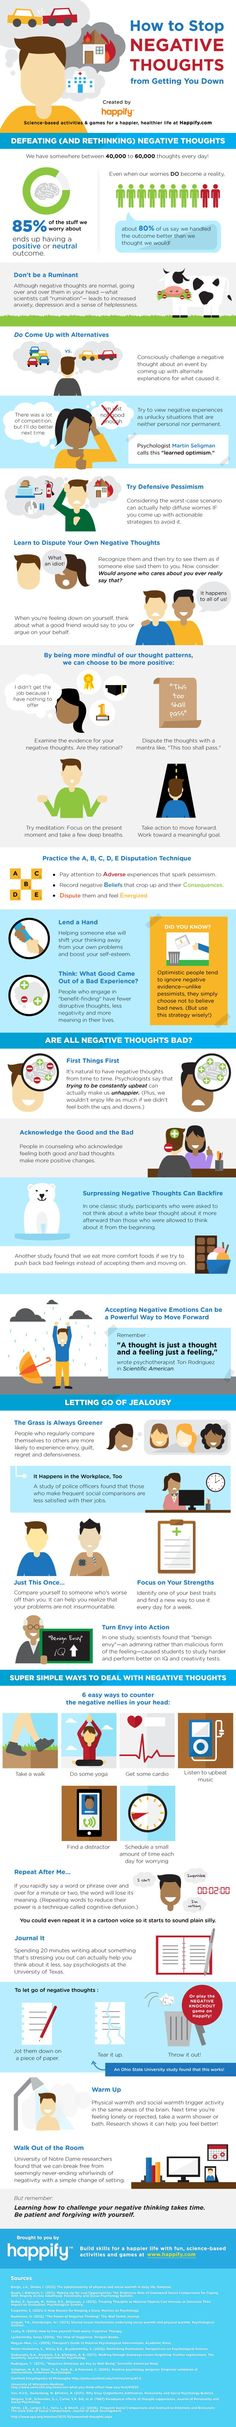 How To Stop Negative Thoughts From Bringing You Down, As Explained By Science